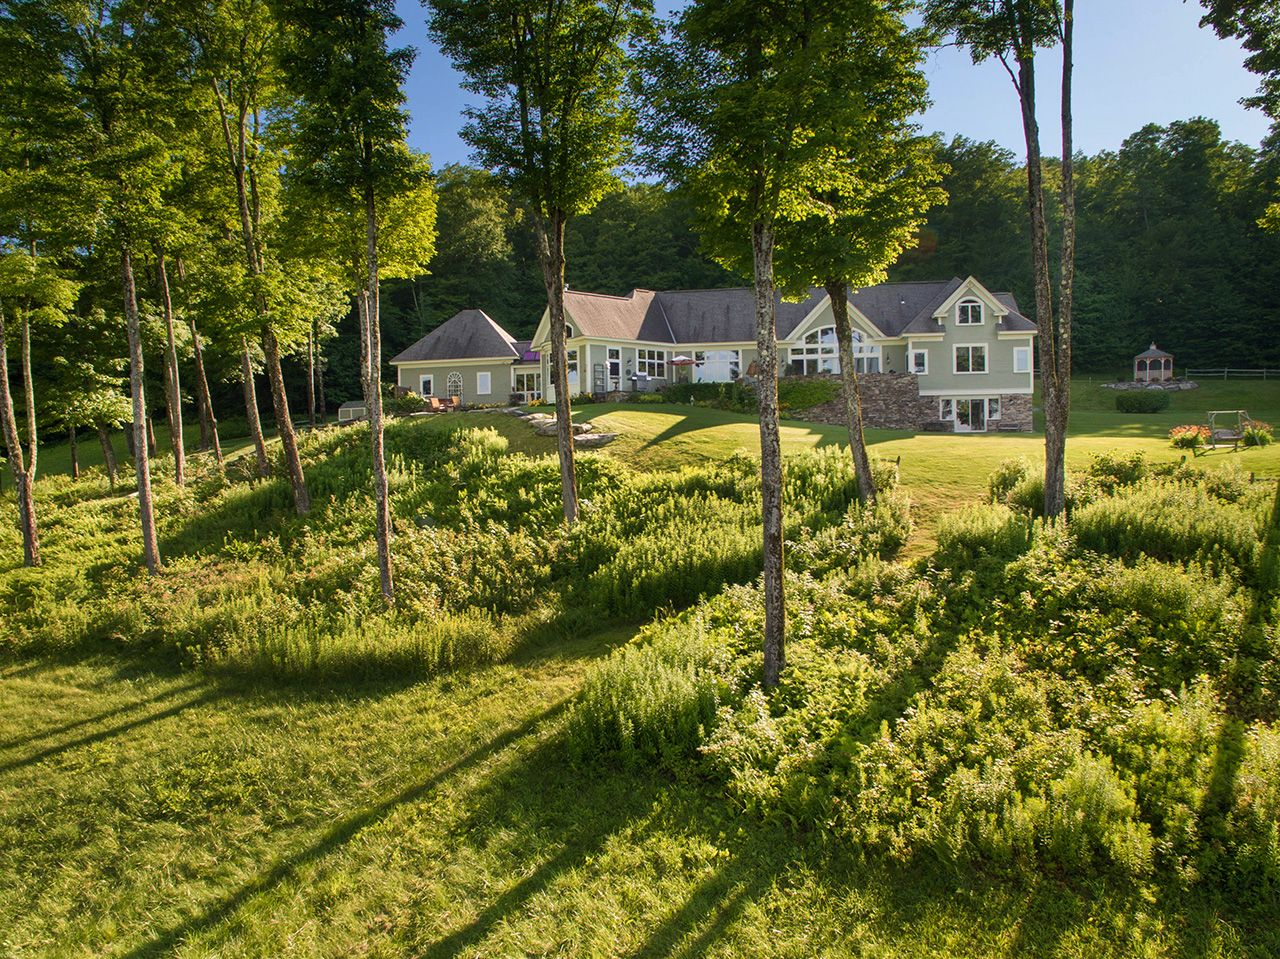 Single Family Home for Sale at Turning Leaf 537 Mad Tom Notch Rd Peru, Vermont,05152 United States